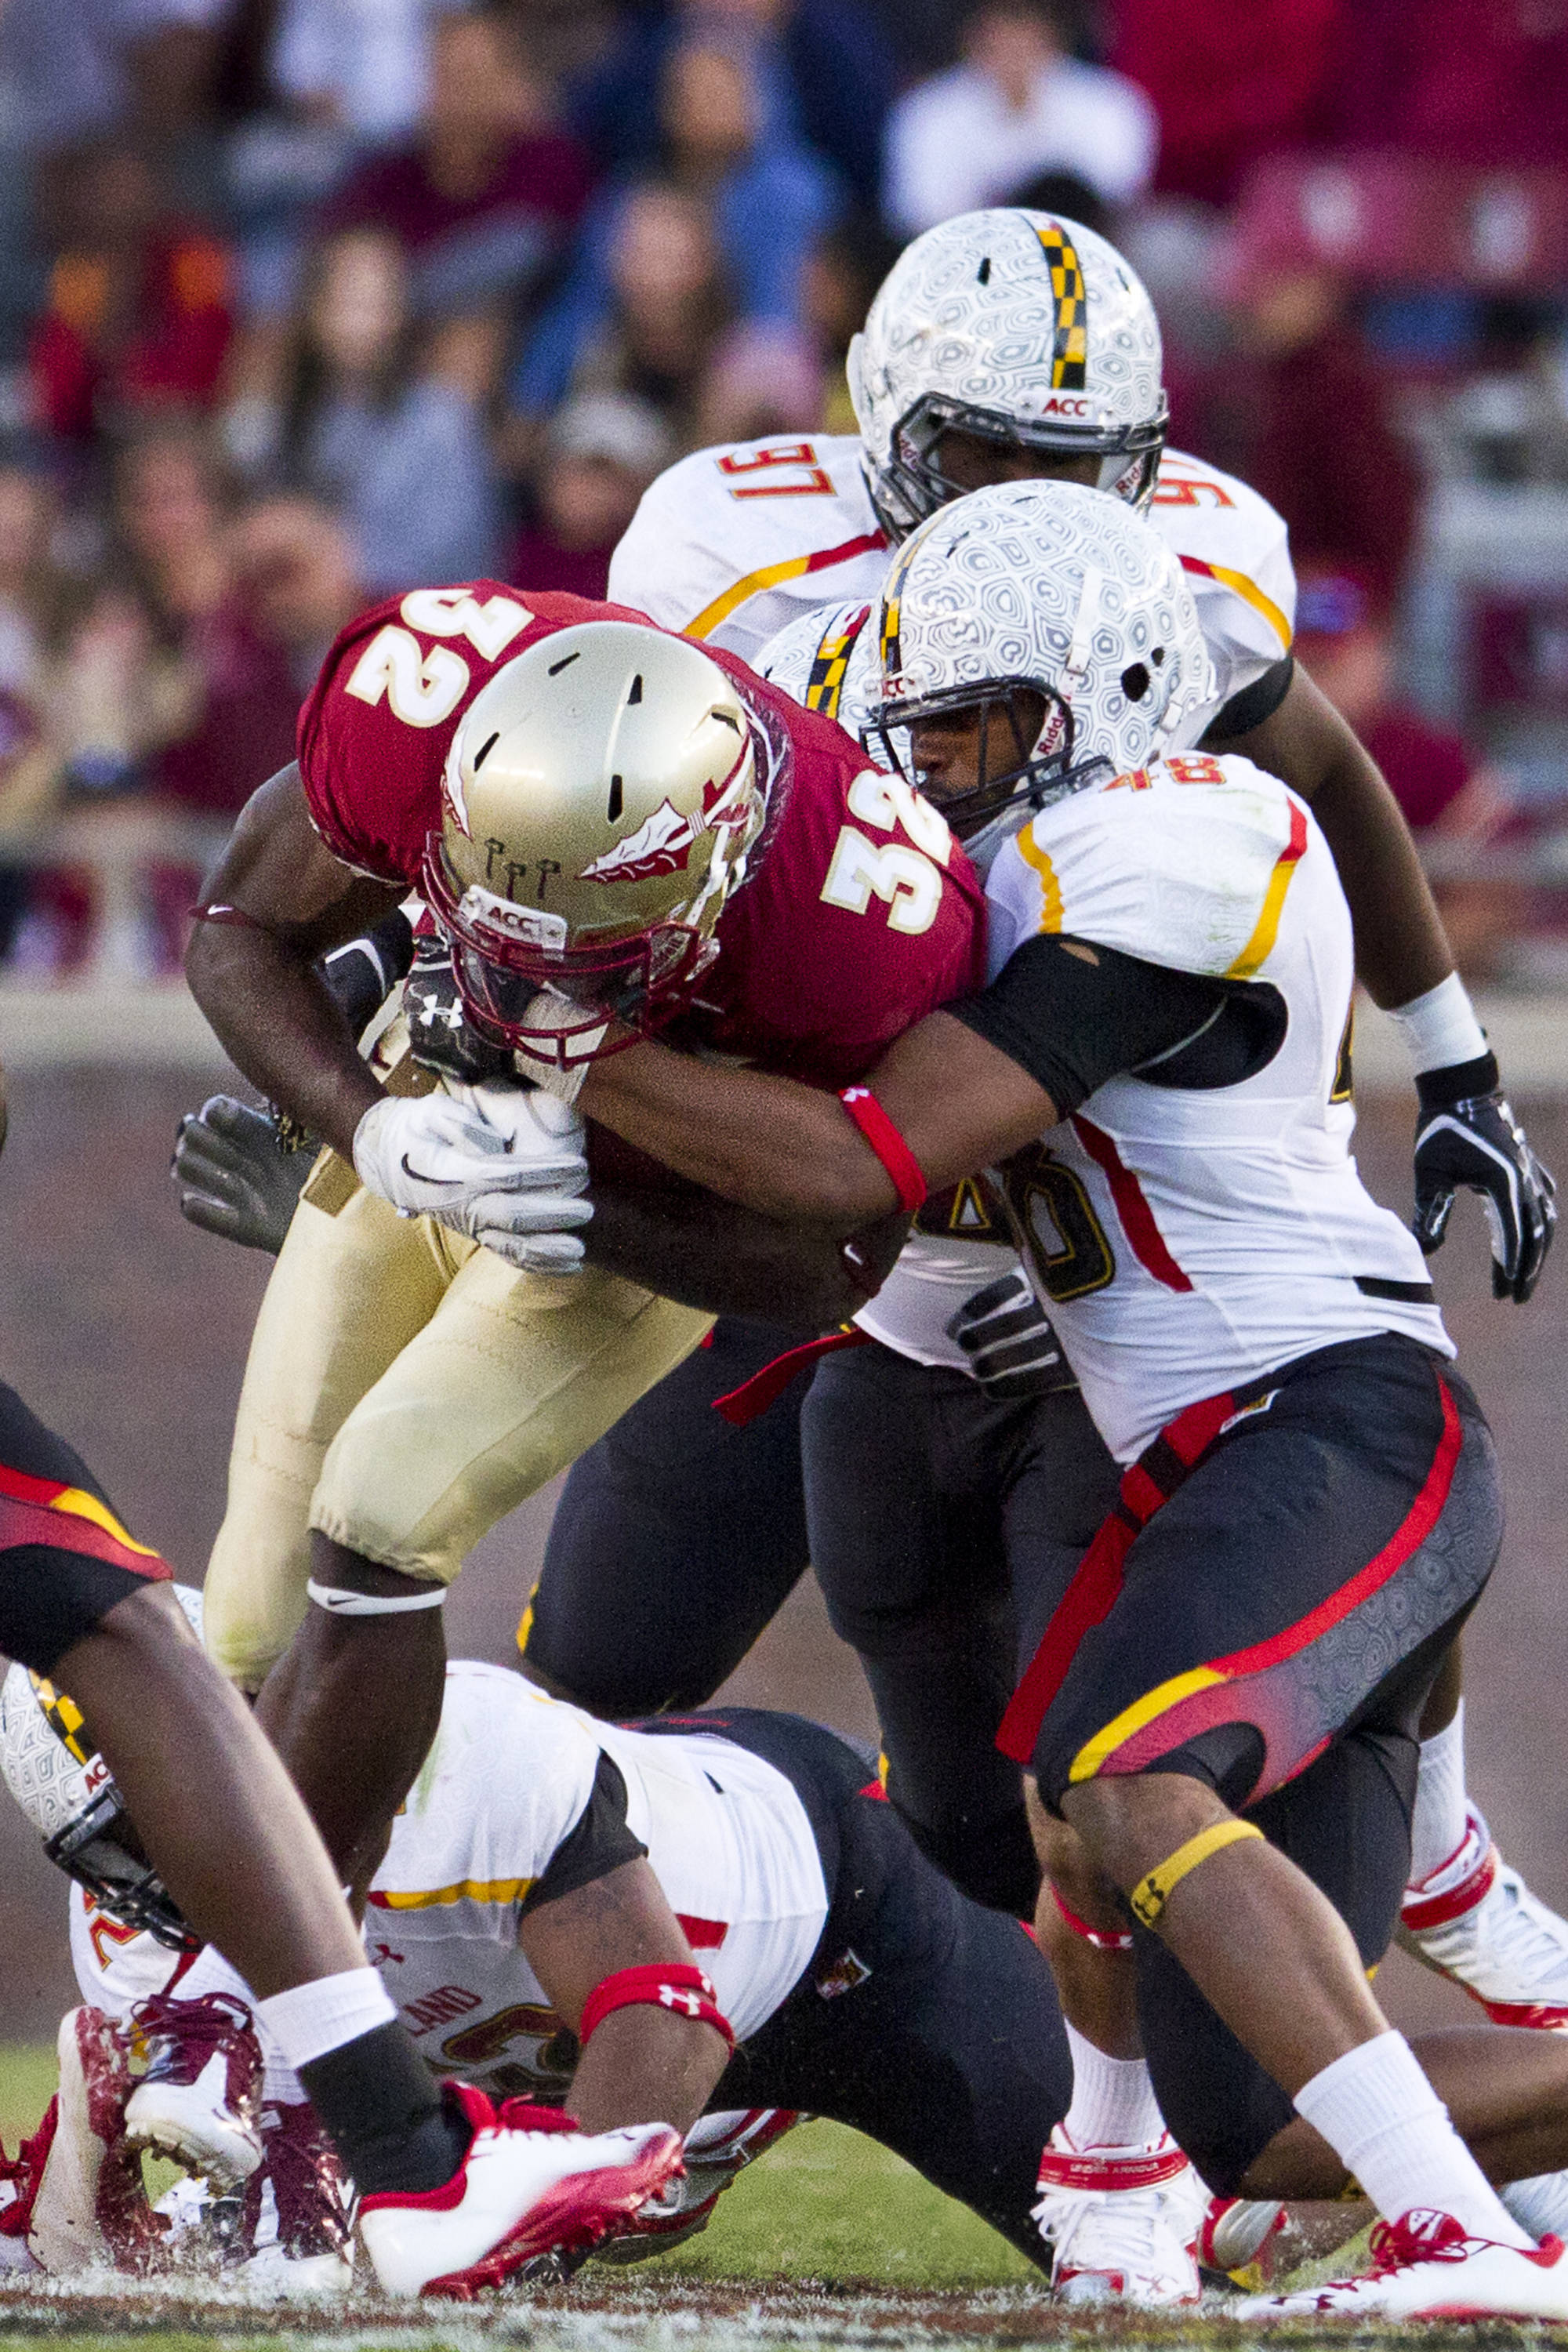 Jr. Wilder James (32) carries the ball and a Maryland defender downfield during the football game against Maryland in Tallahassee, Florida on October 22, 2011.